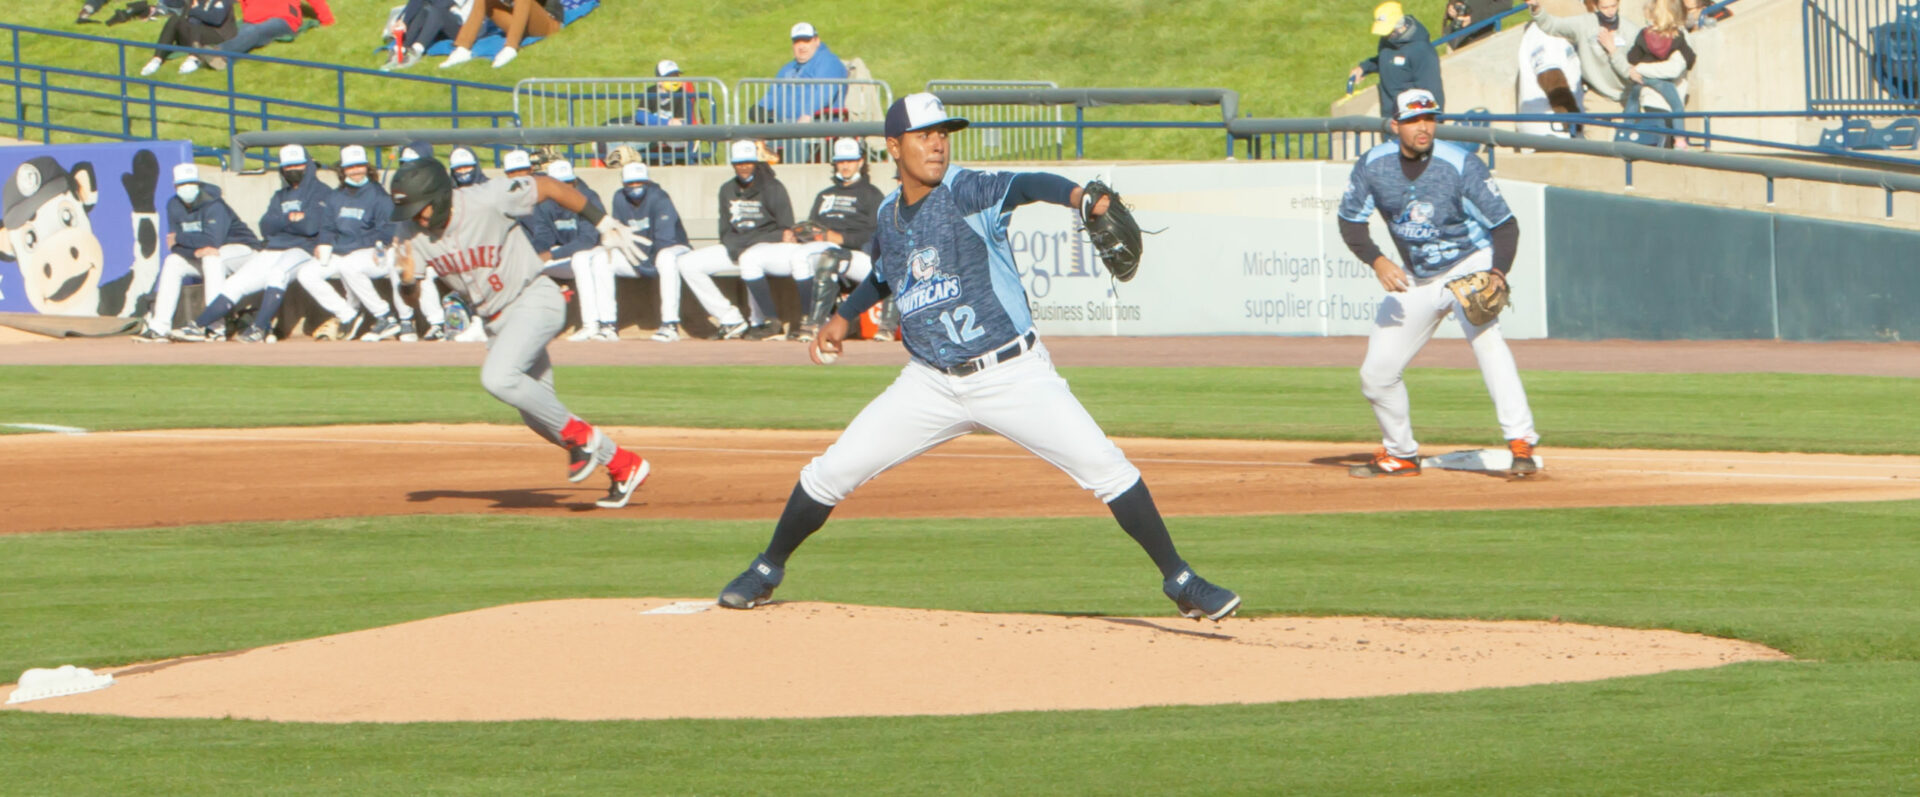 Whitecaps pitchers give up a lot of free passes in a 9-1 loss to the Great Lakes Loons in West Michigan's home opener